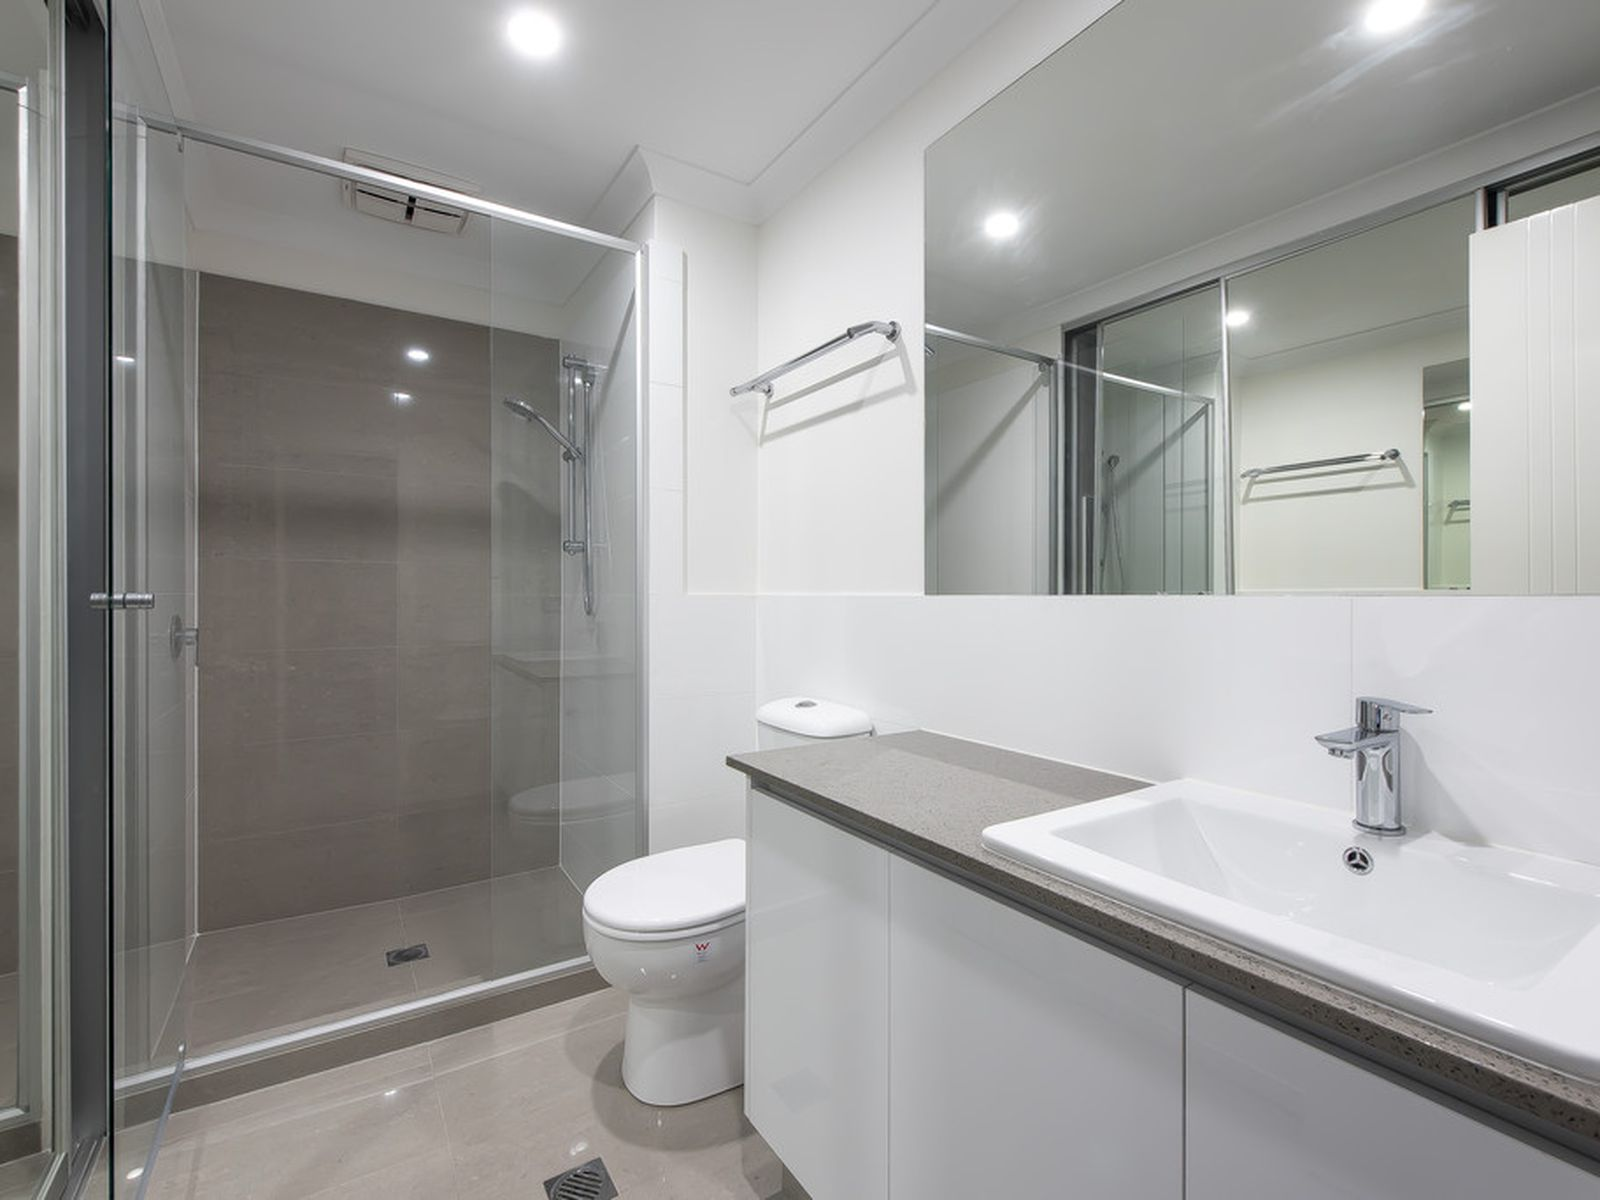 10/1 Liege St, Woodlands